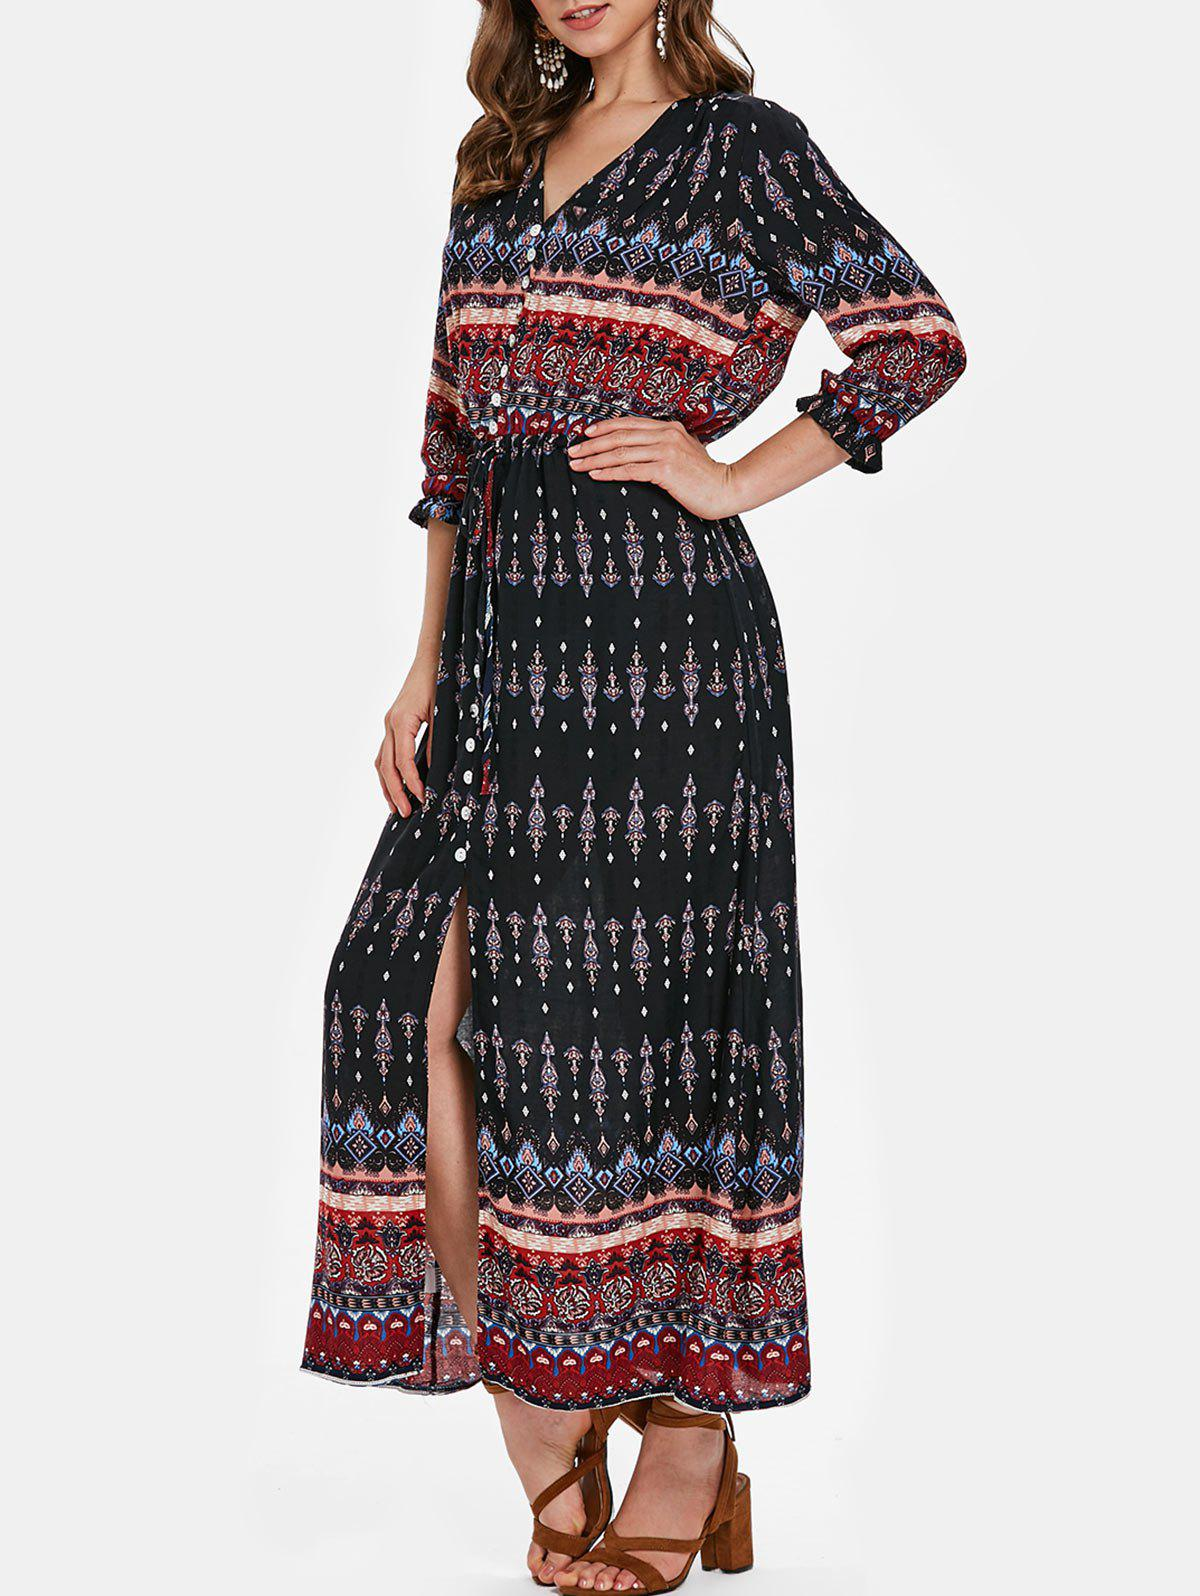 New Bohemian Print Half Sleeve Button Dress